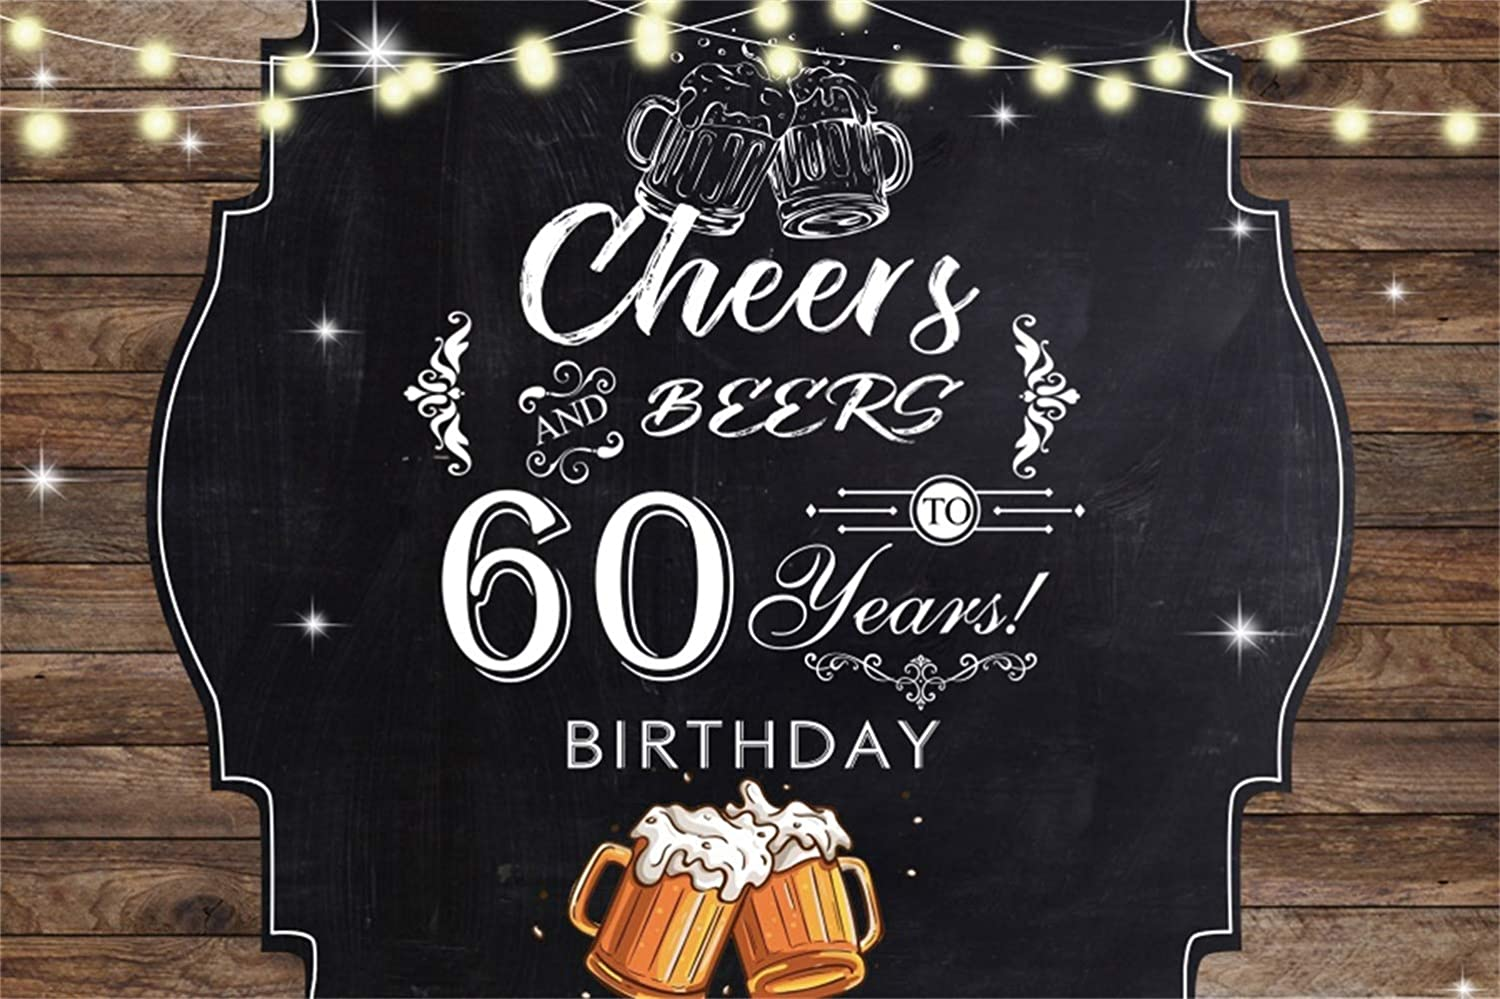 Leowefowa 60th Birthday Backdrop 5x3ft Rustic Retro Wood Plank Beer Cups Cheering Light Decors Happy 60th Birthday Photography Background Old People Birthday Banner Supplies Cake Table Decor Props